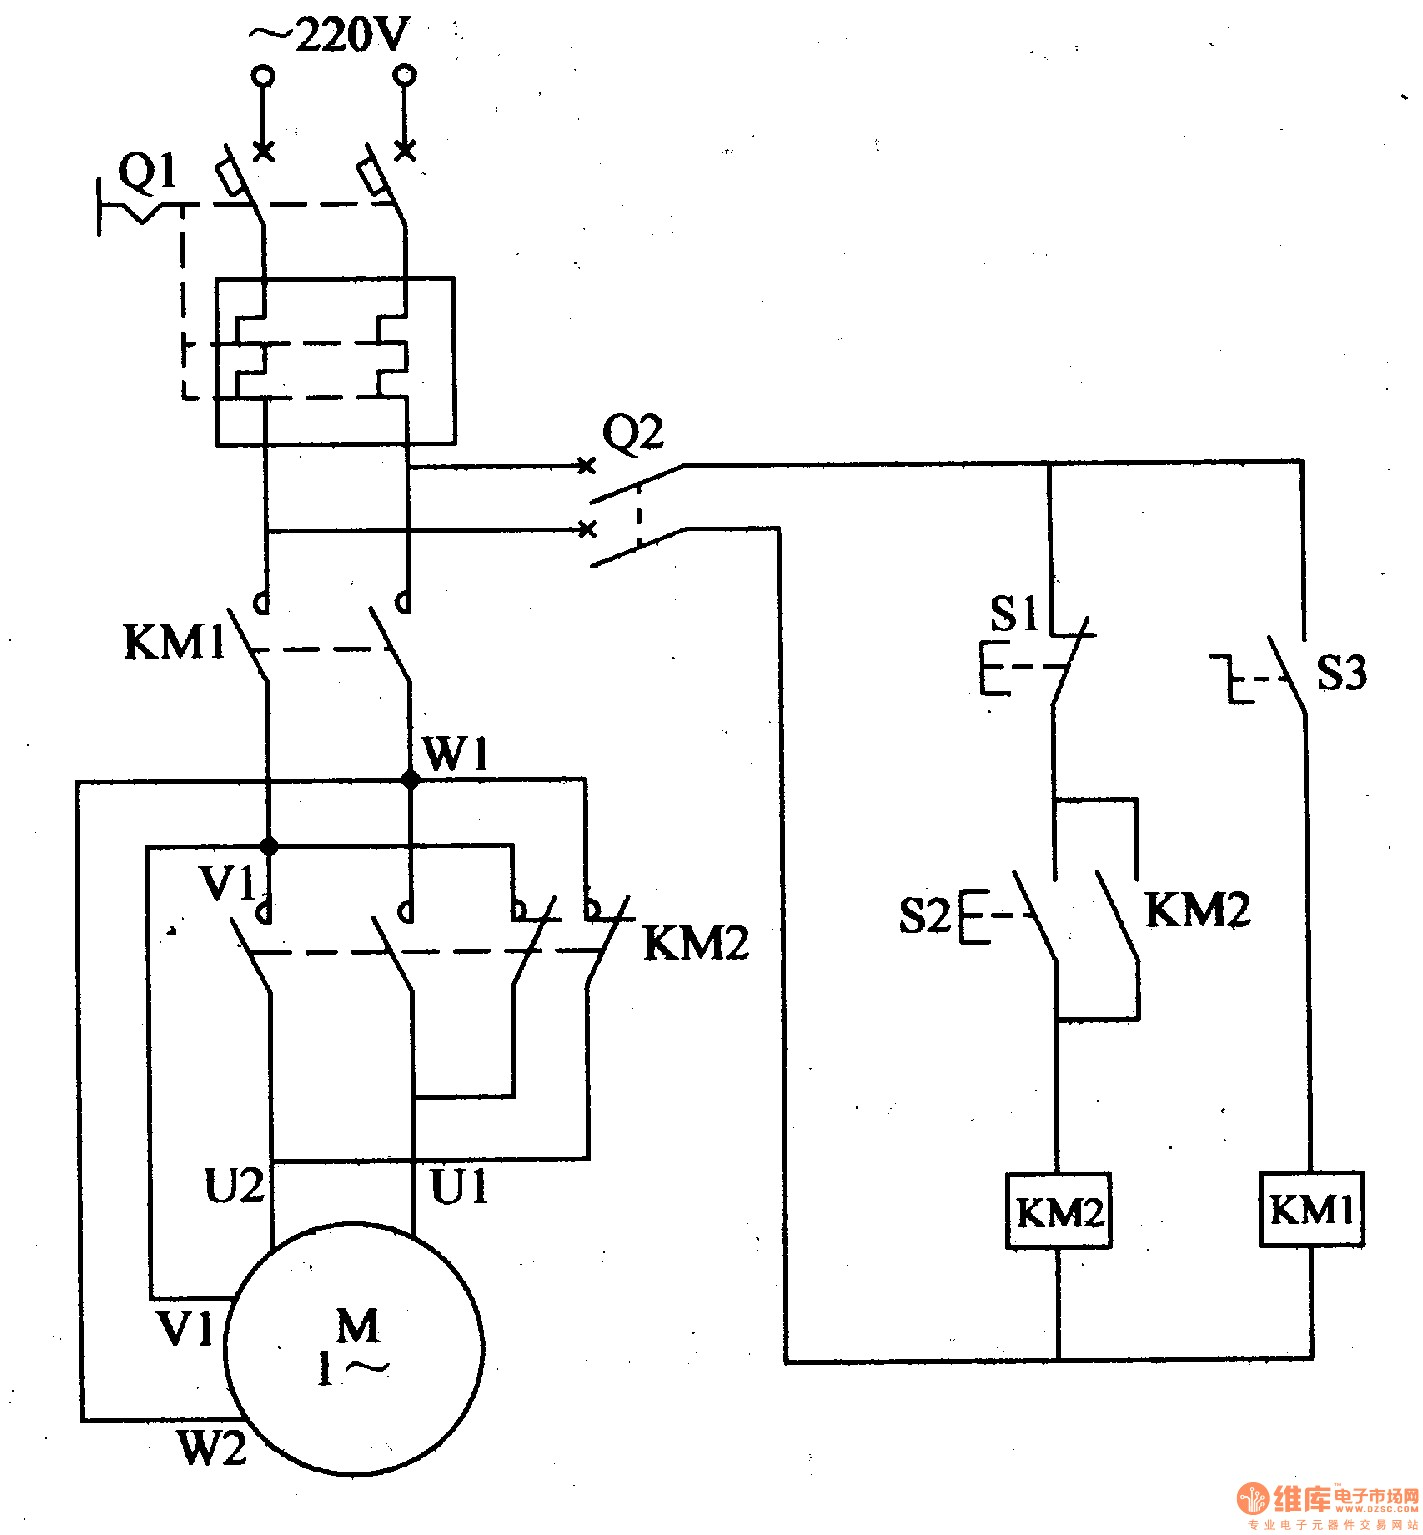 Single phase induction motor wiring diagram wiring diagram image ponent ac motor control circuit diagram single phase controlled automotive speed full size capacitor hid what asfbconference2016 Image collections